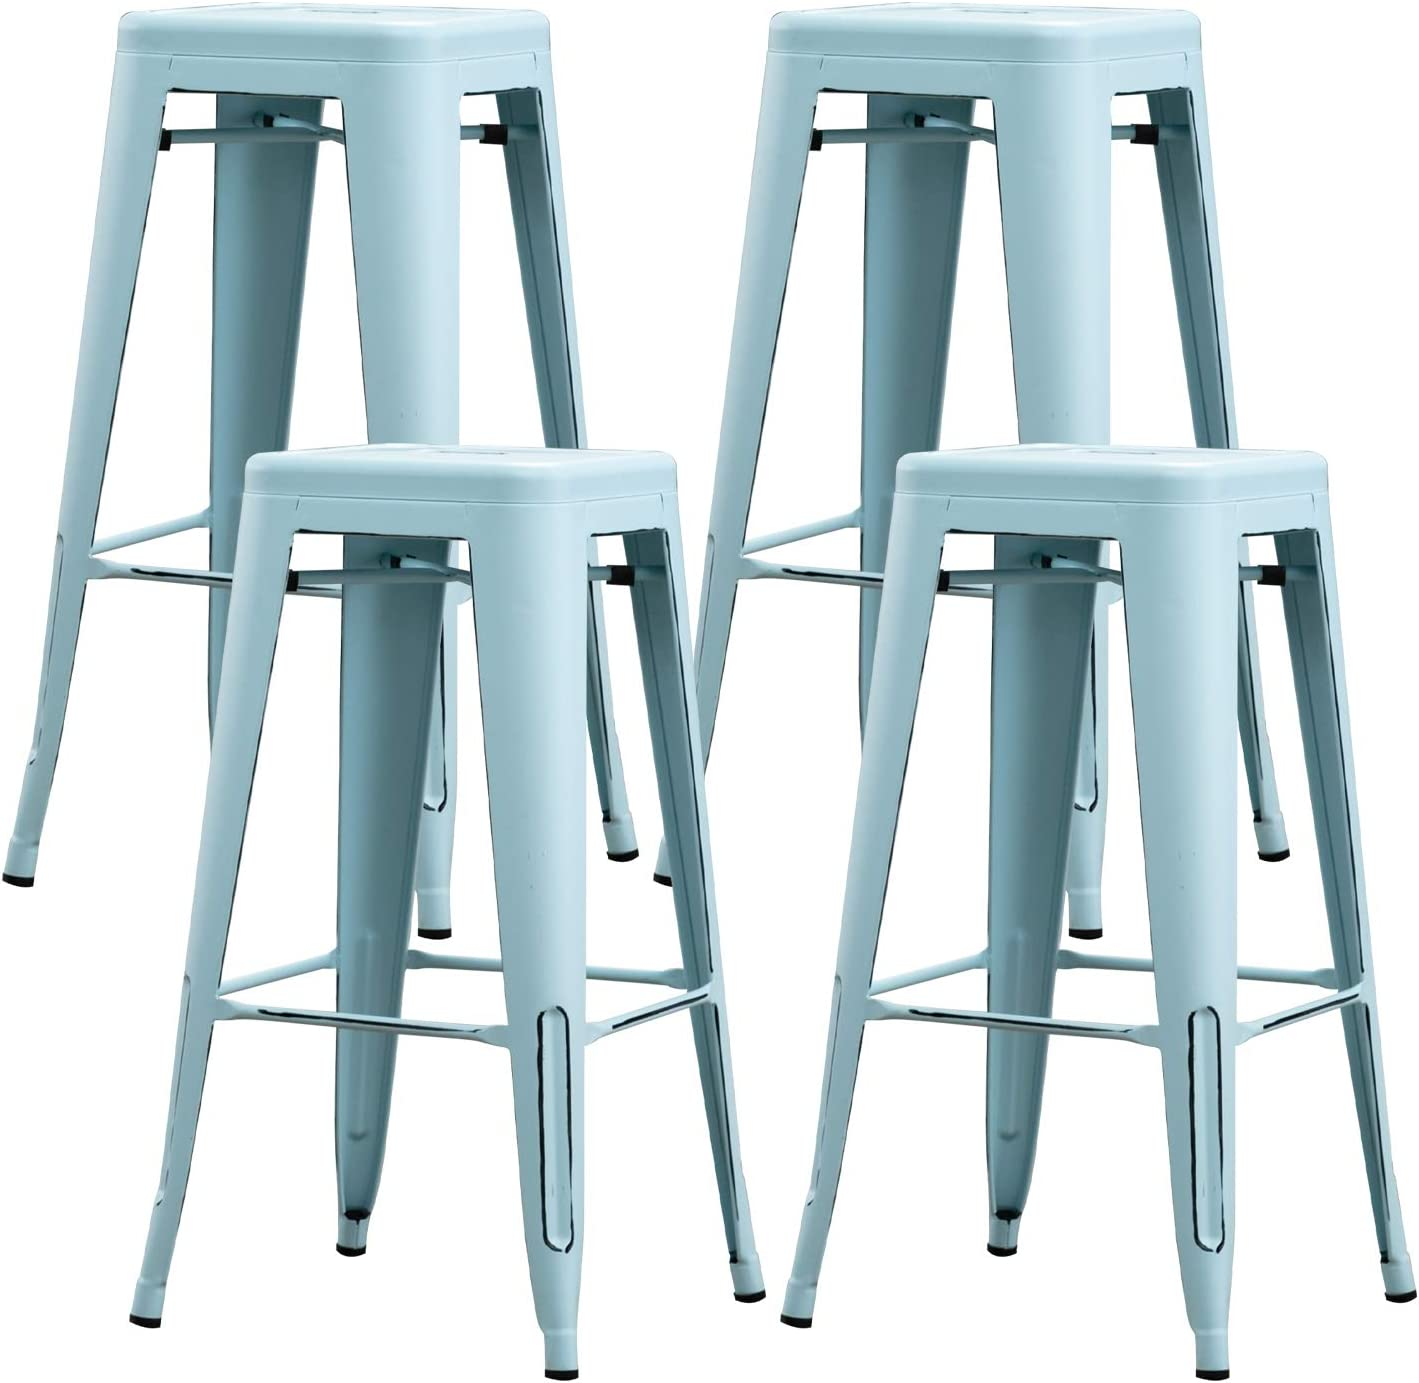 Bonzy Home Bar Stools Set of 4, 30 inch Distressed Designed Metal Barstools, Stackable Home Kitchen Backless Dining Stool, Indoor Outdoor Patio Bar Chair - Distressed Light Blue …